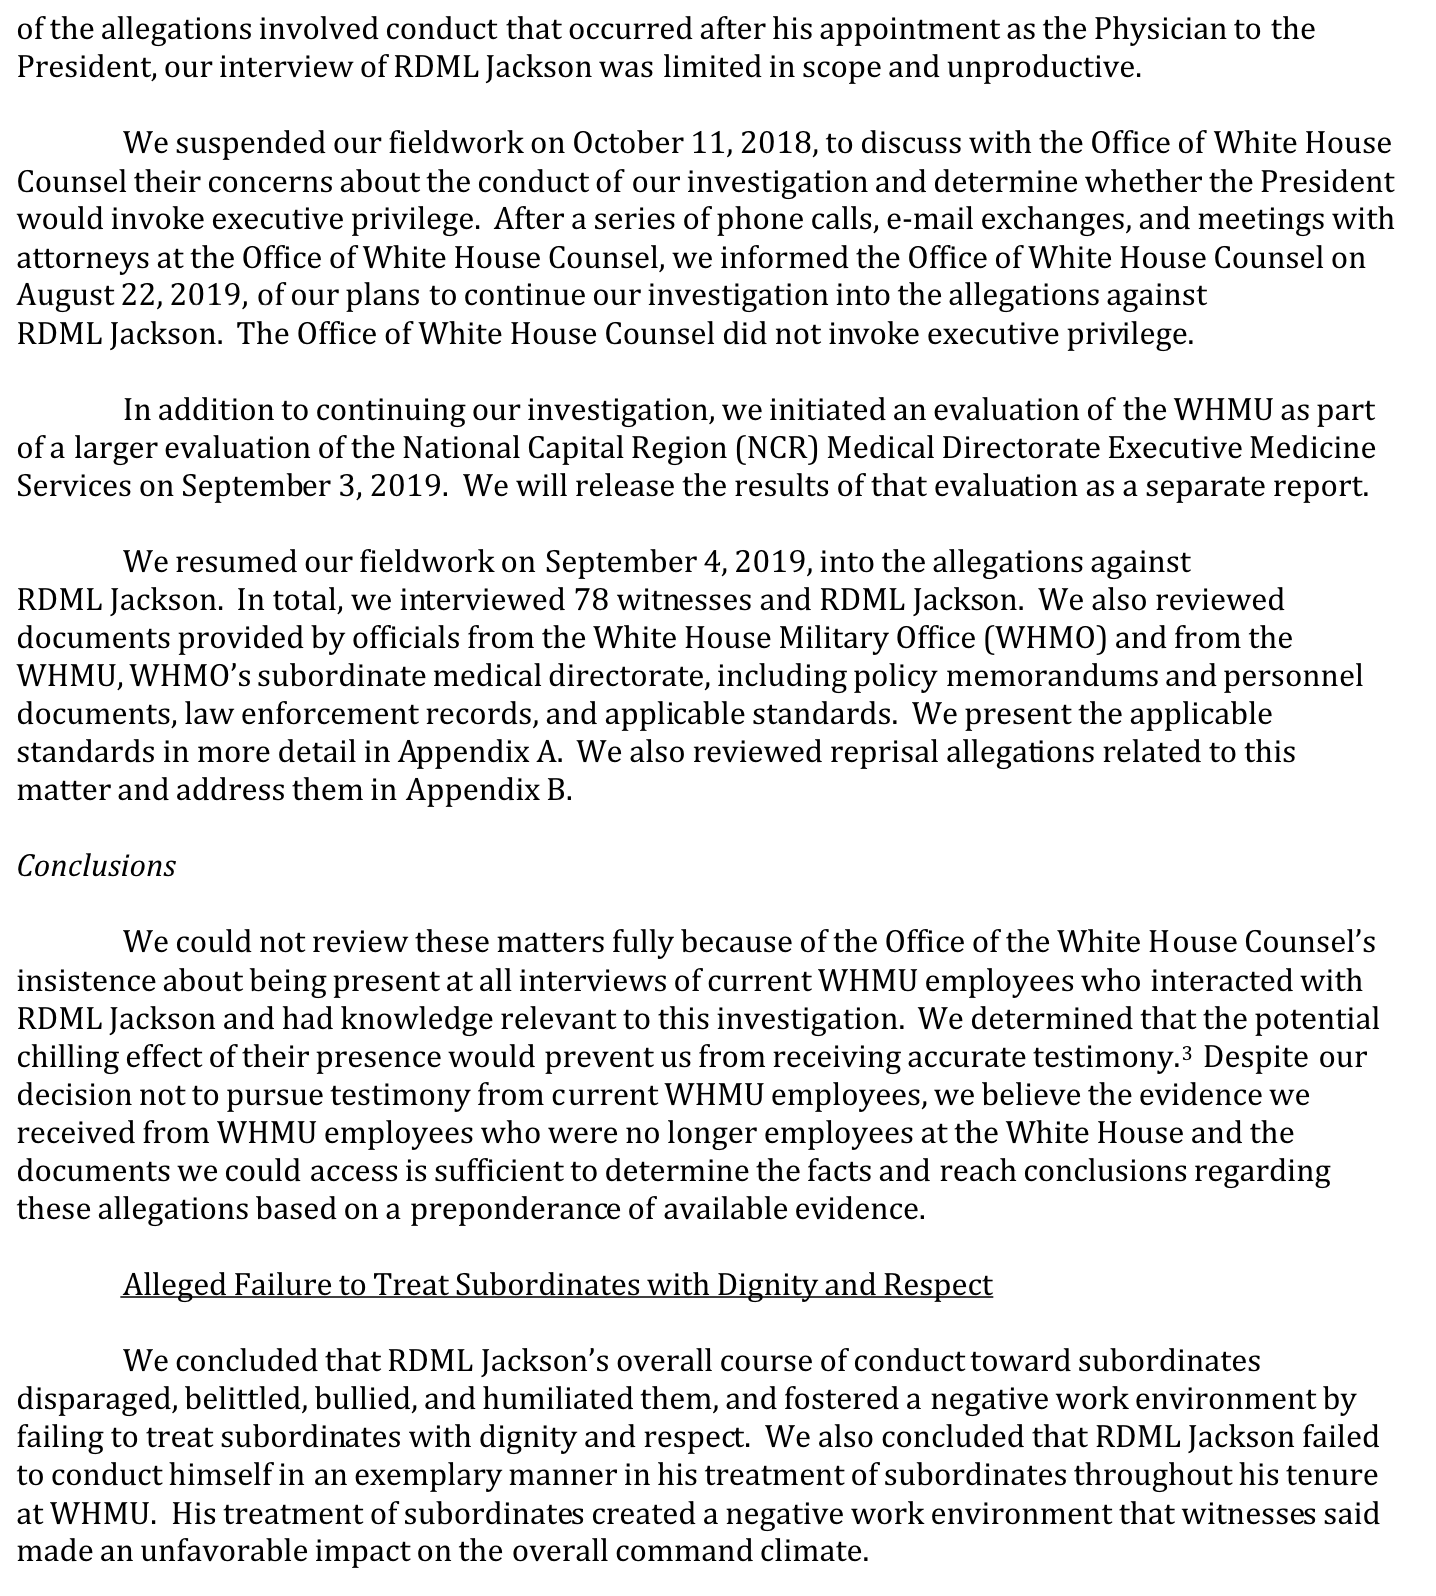 Screen-Shot-2021-03-03-at-2.40.09-PM U.S. Inspector General Condemns Republican Congressman For Widespread Abuse Corruption Crime Featured Politics Top Stories